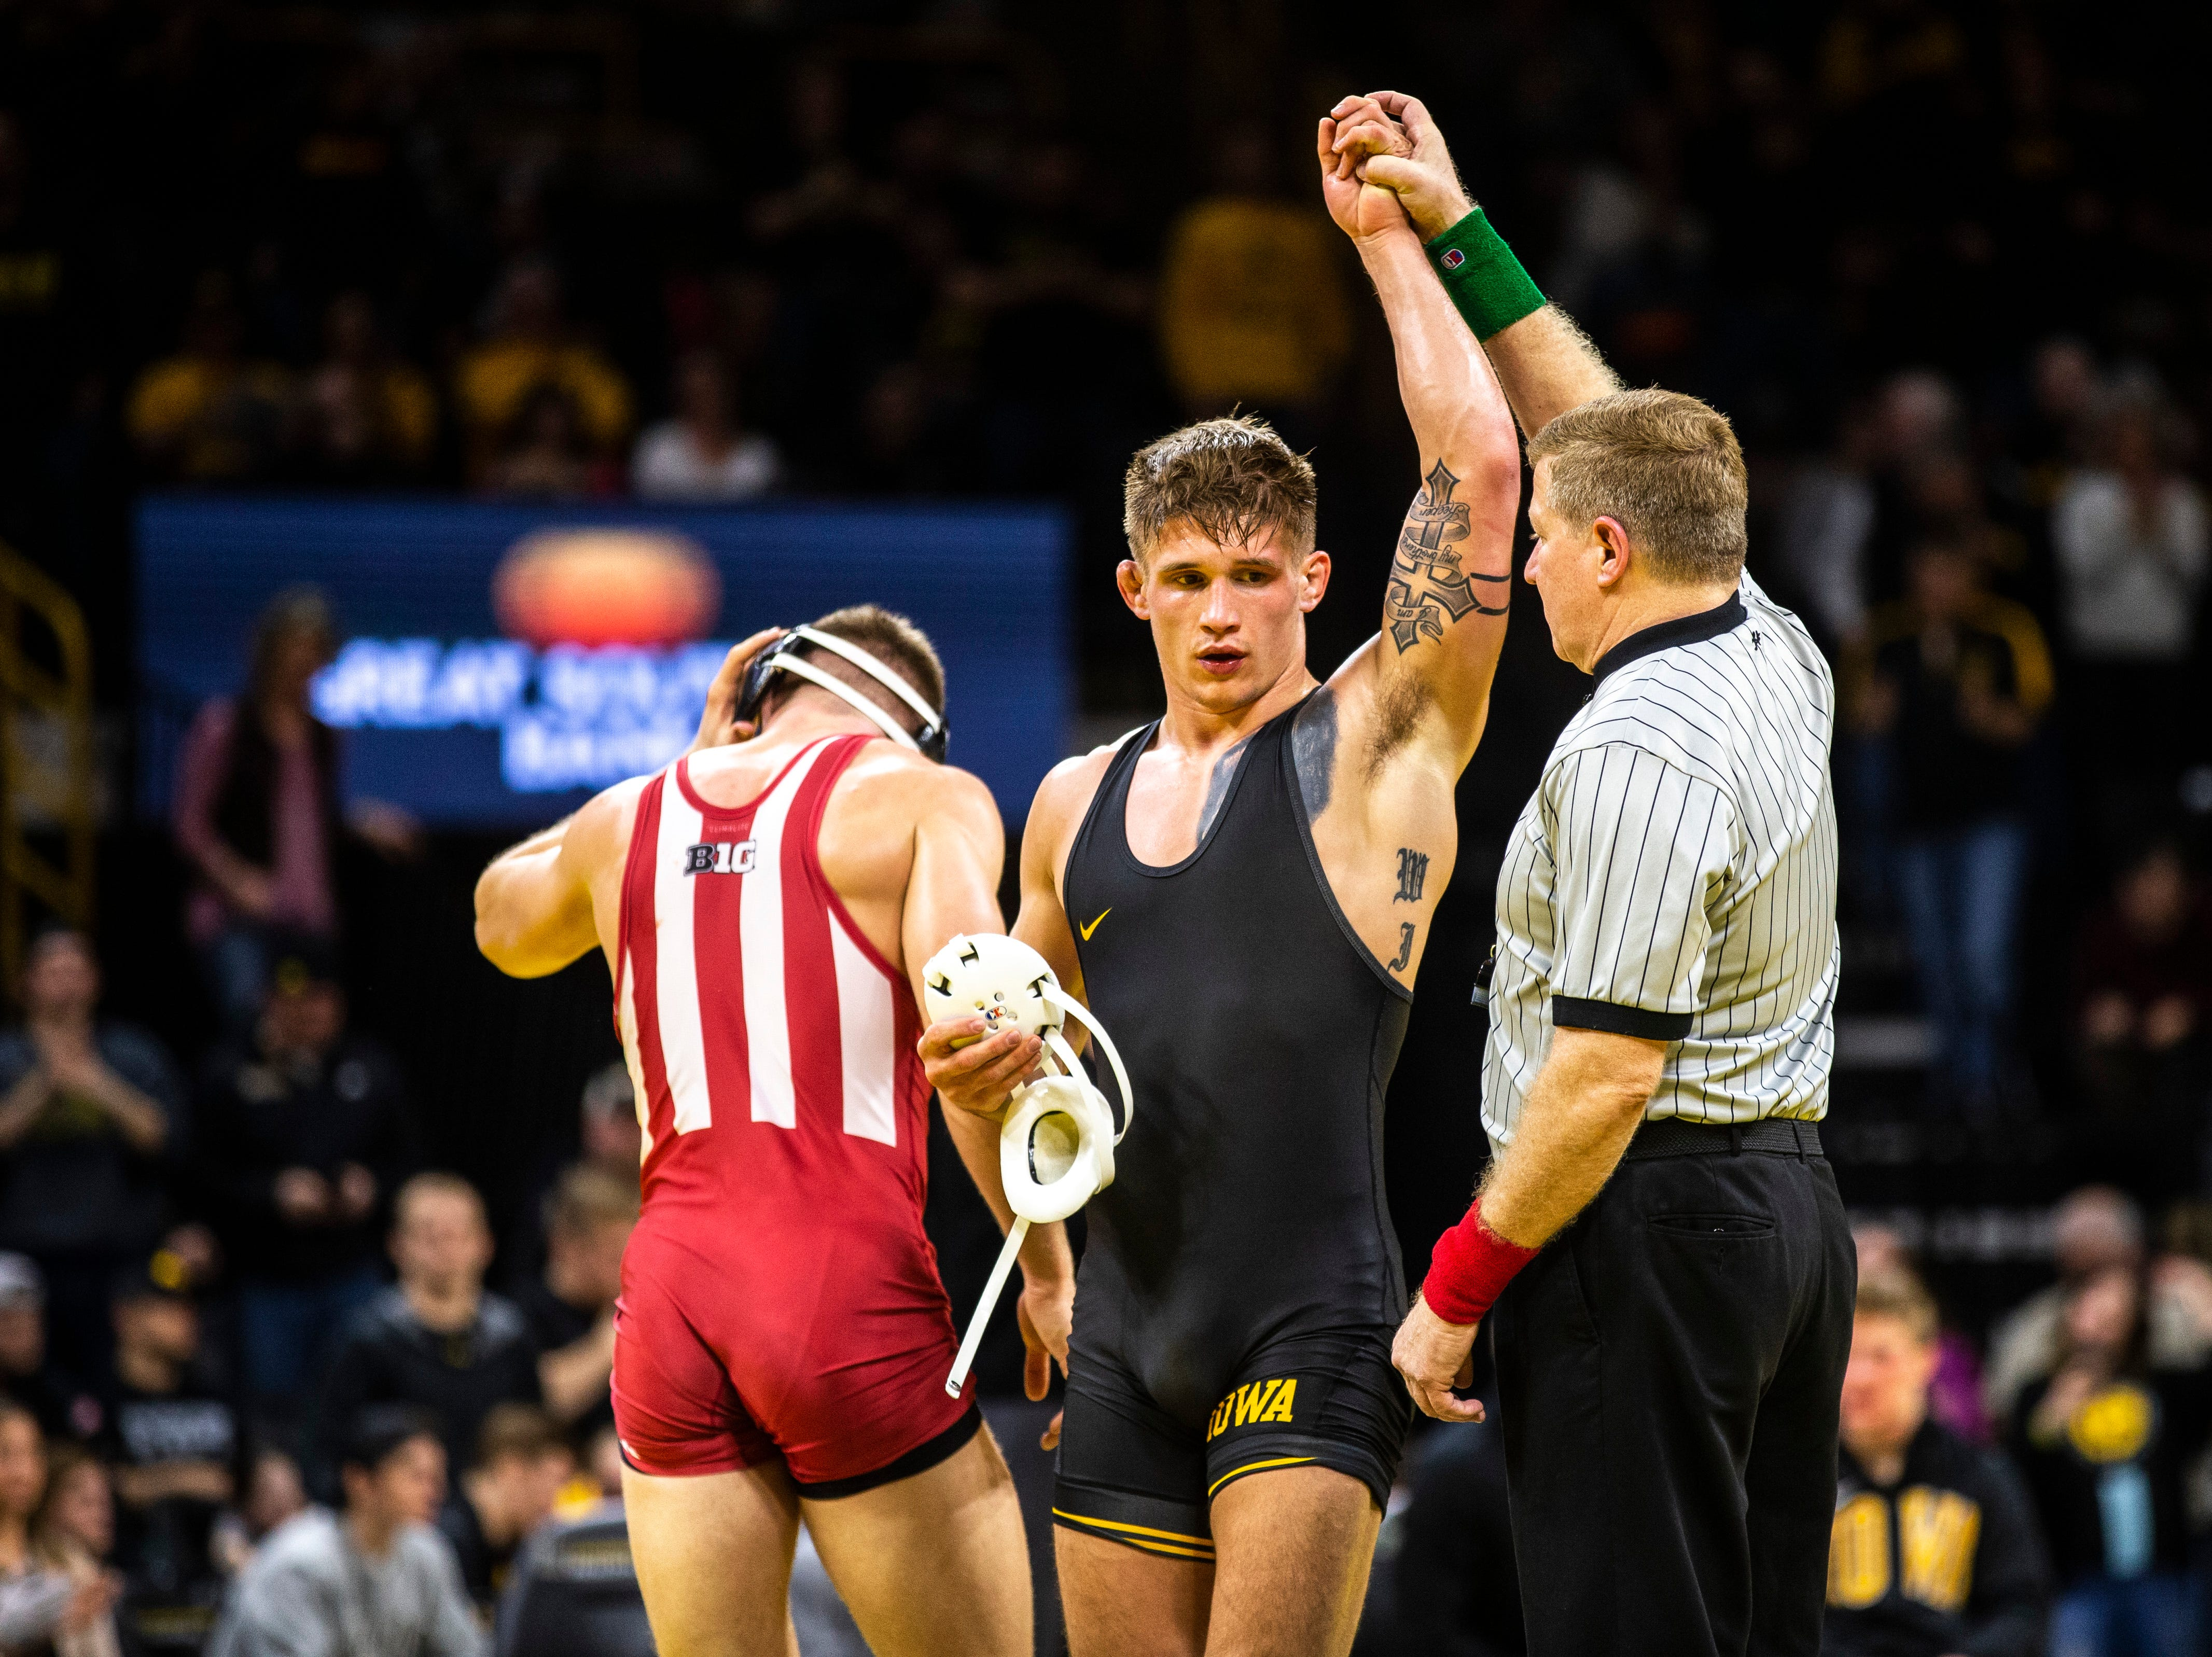 Iowa's Cash Wilcke has his hand raised after scoring a decision over Indiana's Norman Conley at 184 during a NCAA Big Ten Conference wrestling dual on Friday, Feb. 15, 2019 at Carver-Hawkeye Arena in Iowa City, Iowa.